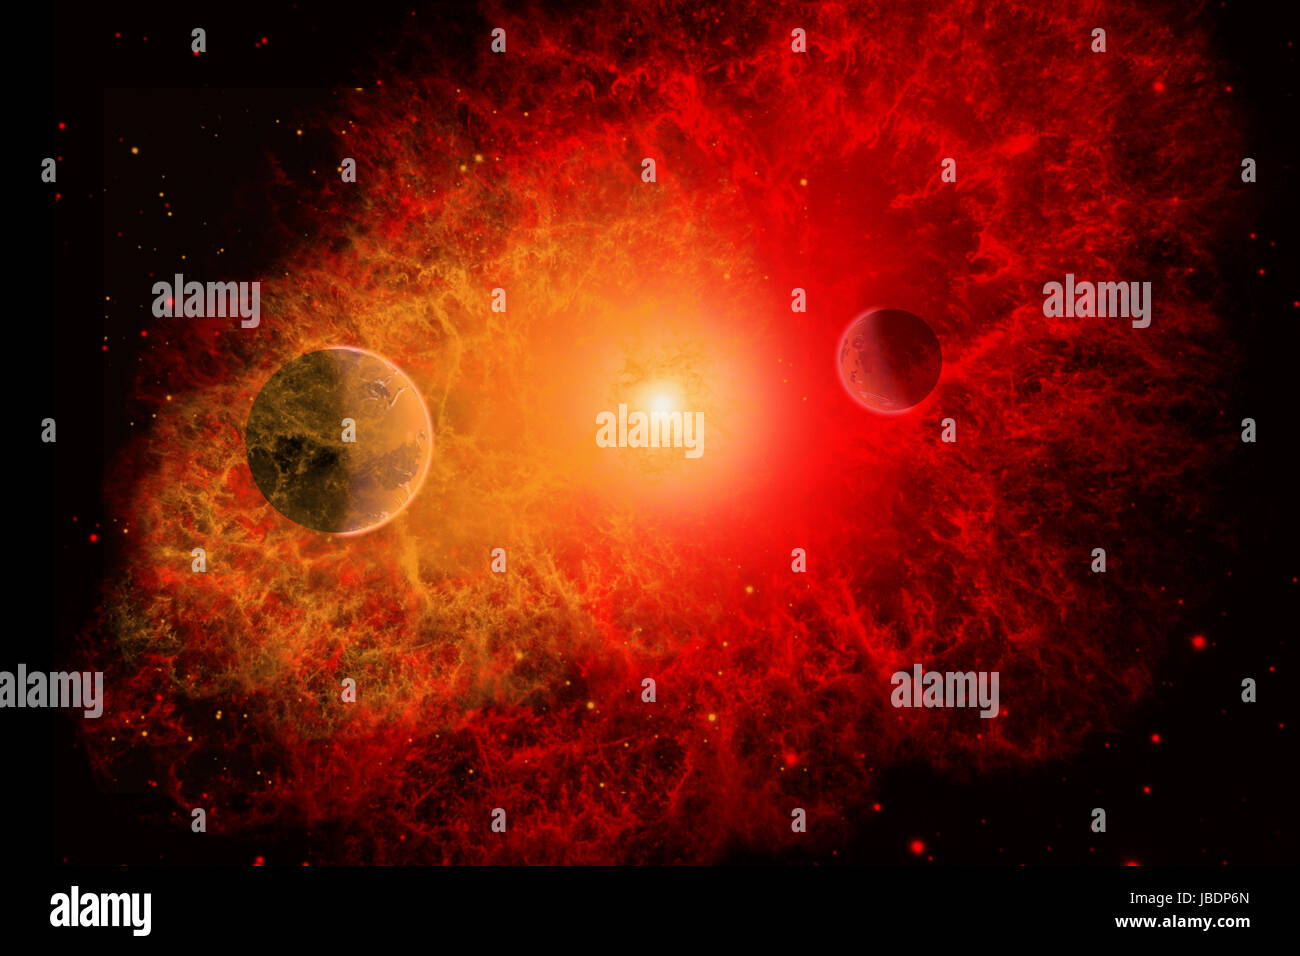 A Supernova Destroying Itself & Its System Of Planets.. - Stock Image